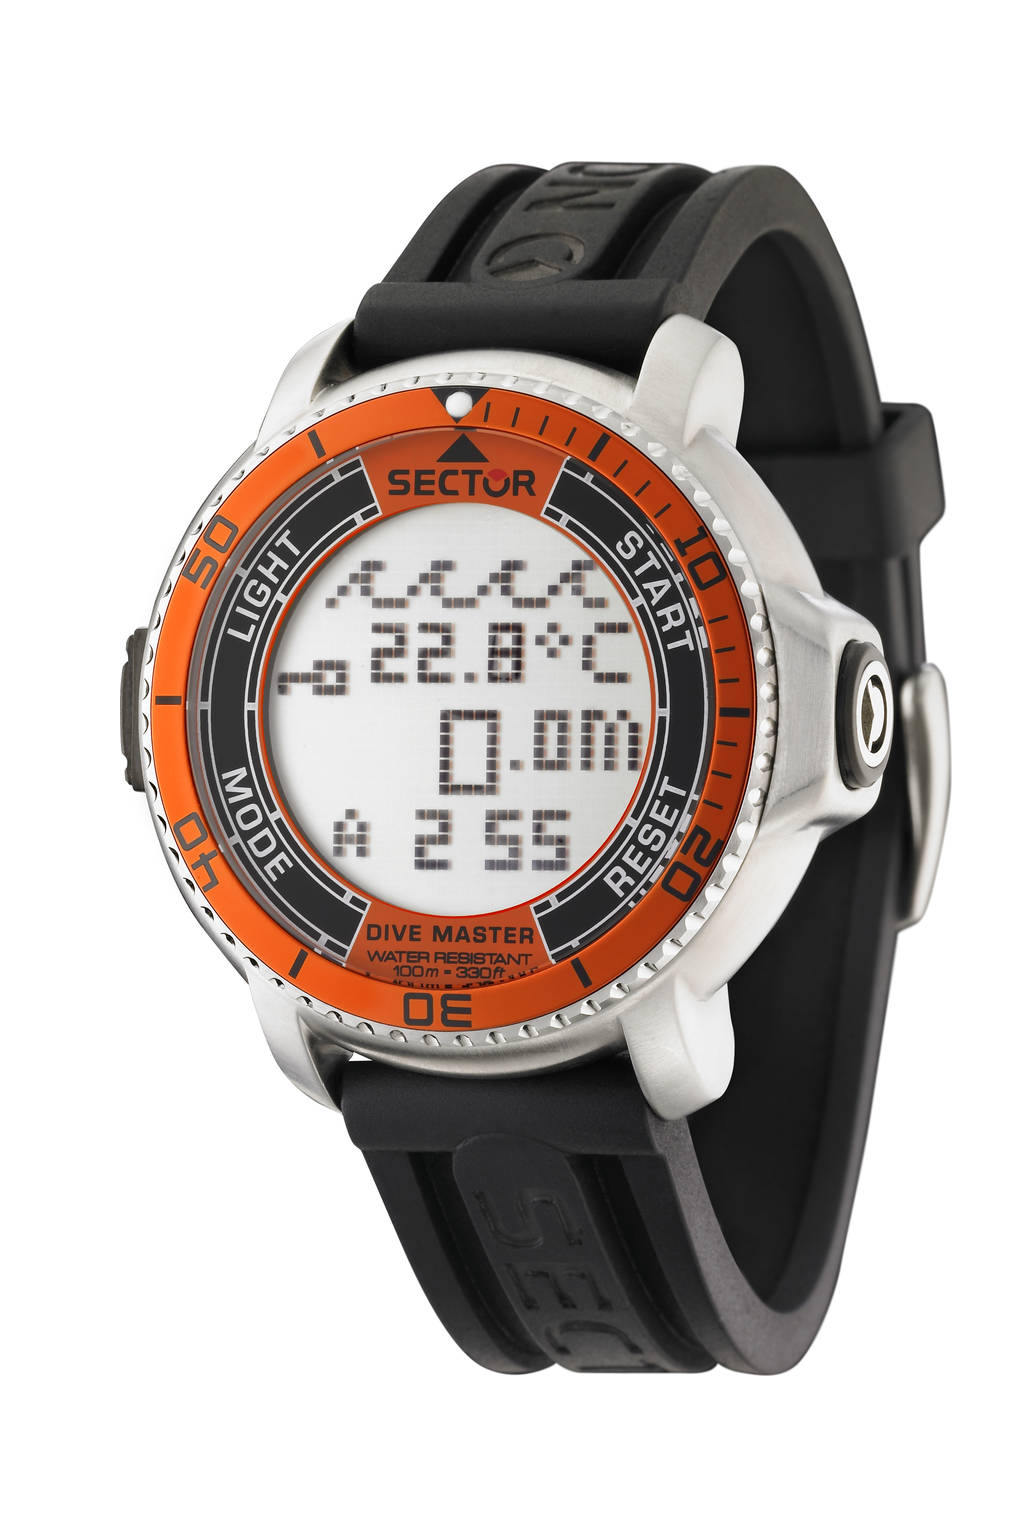 Dive Master - Special Pack — R3251967001